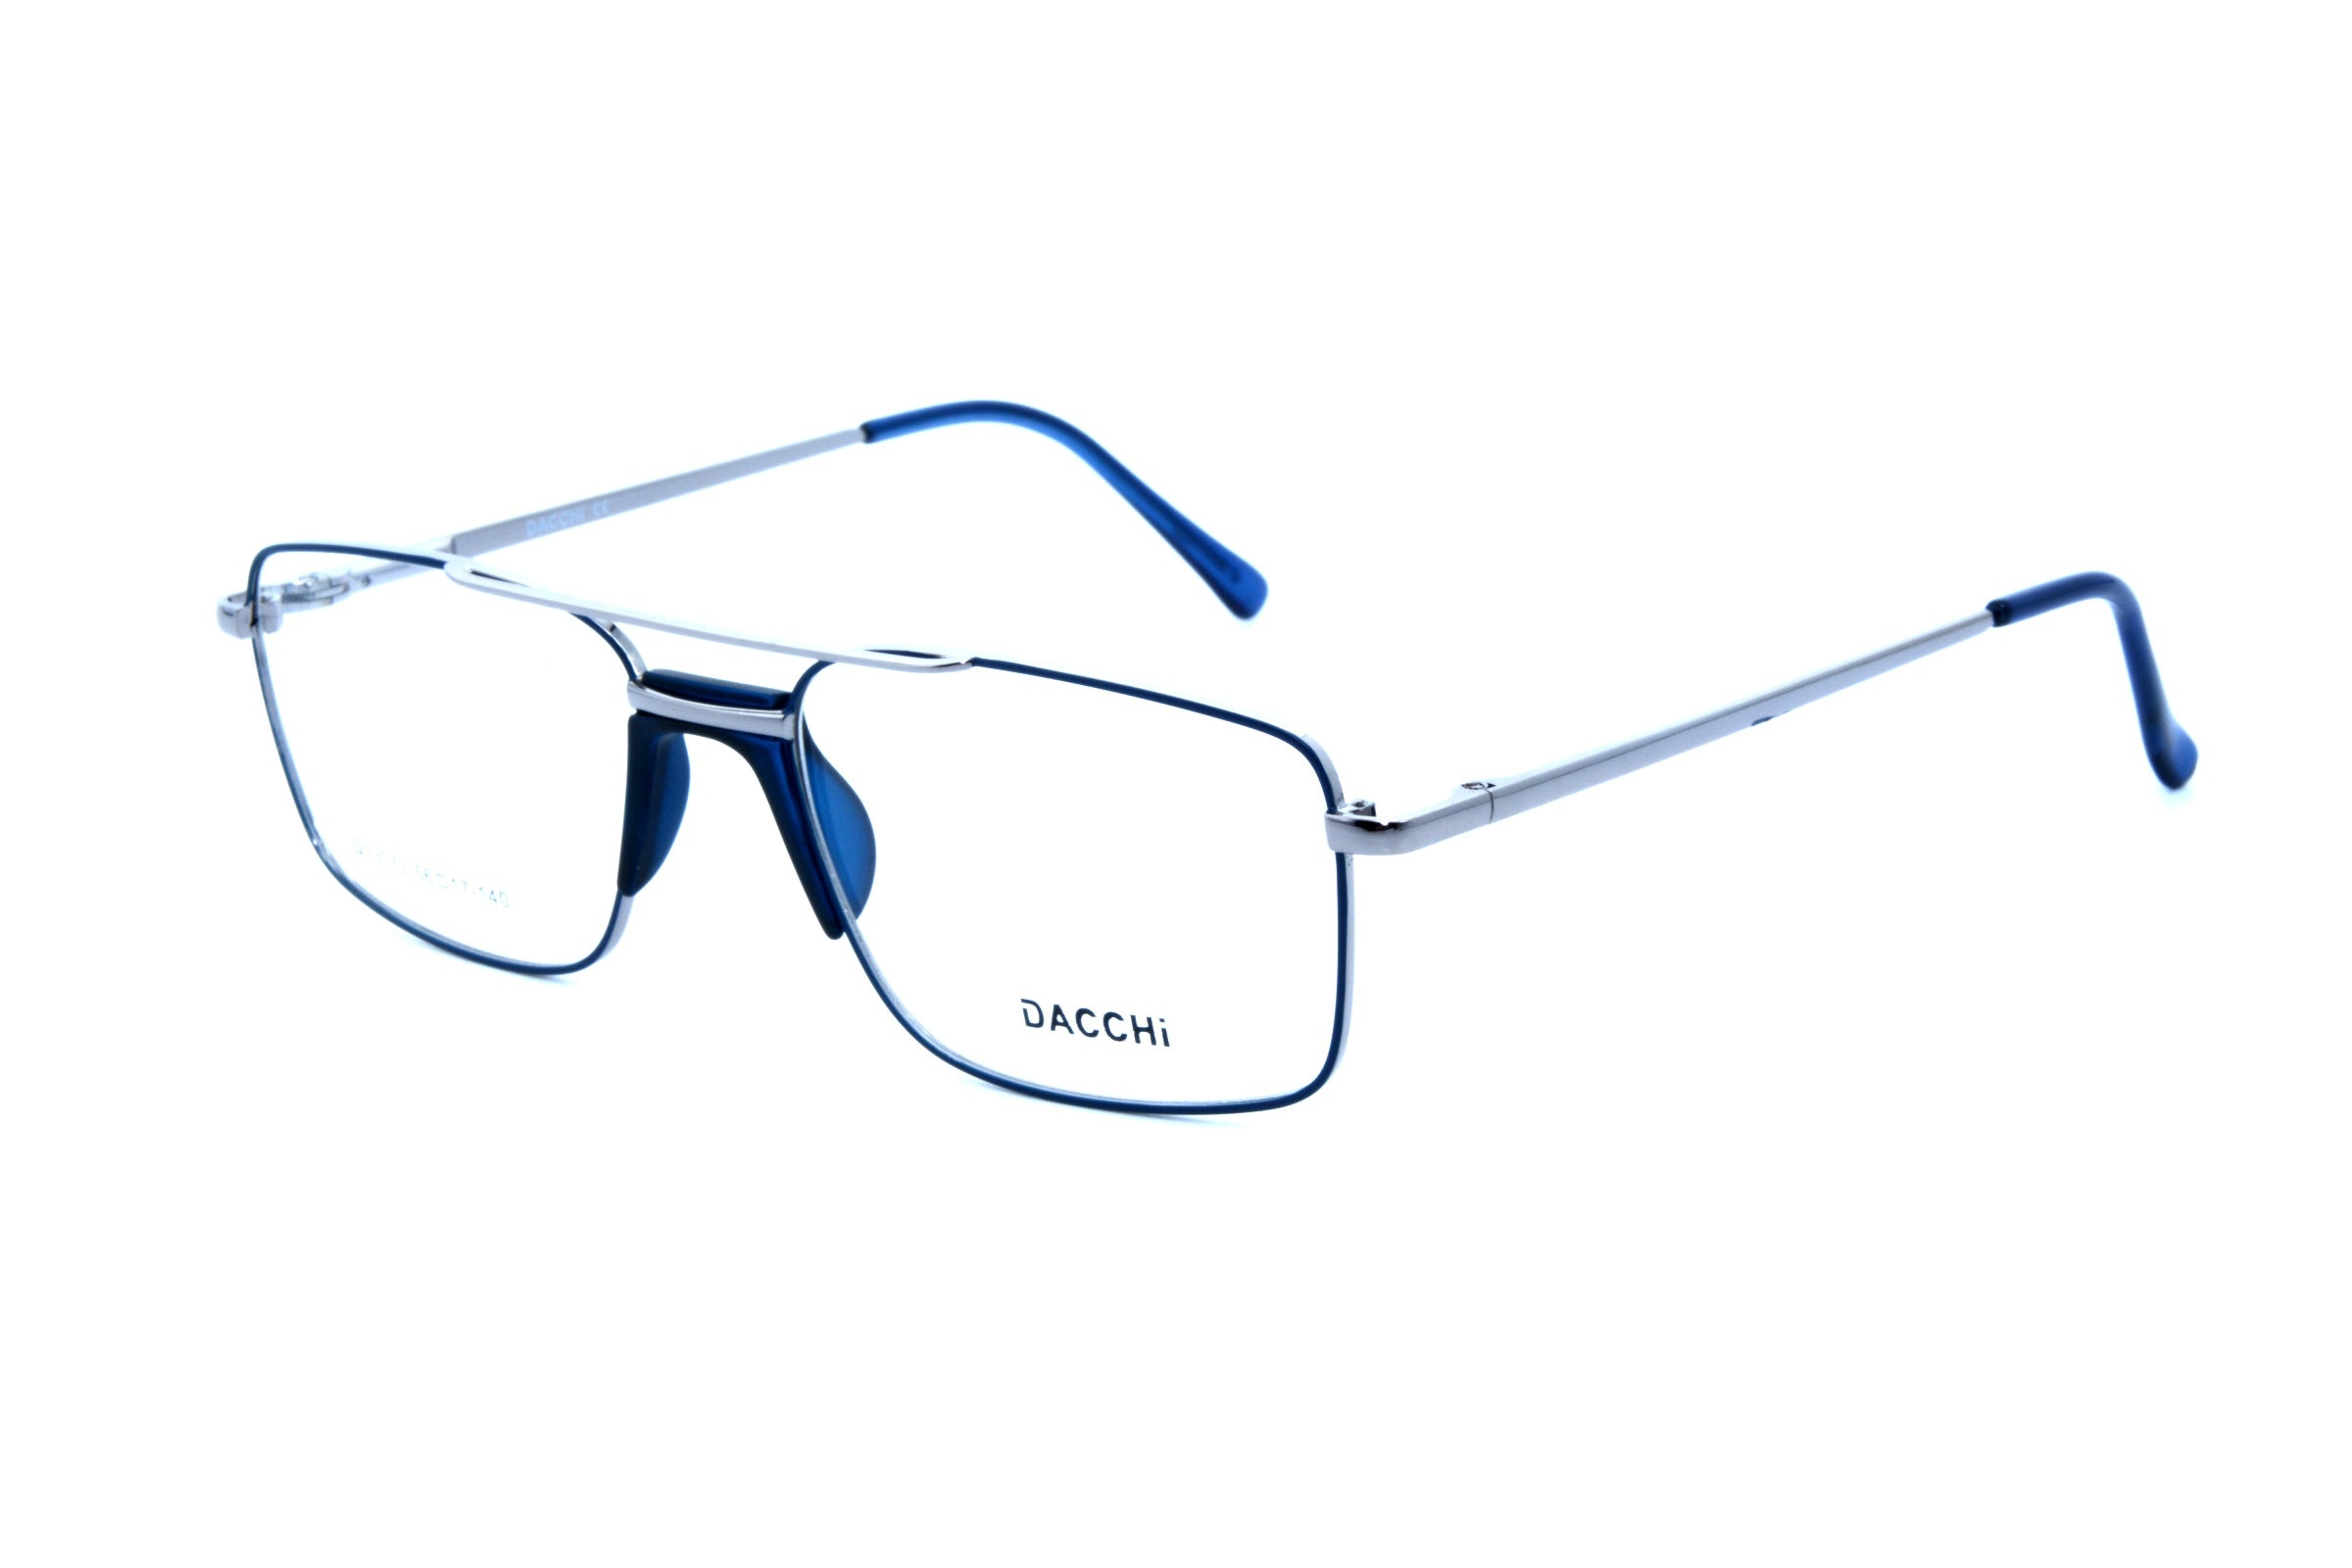 Dacchi eyewear 33073, C6 - Optics Trading